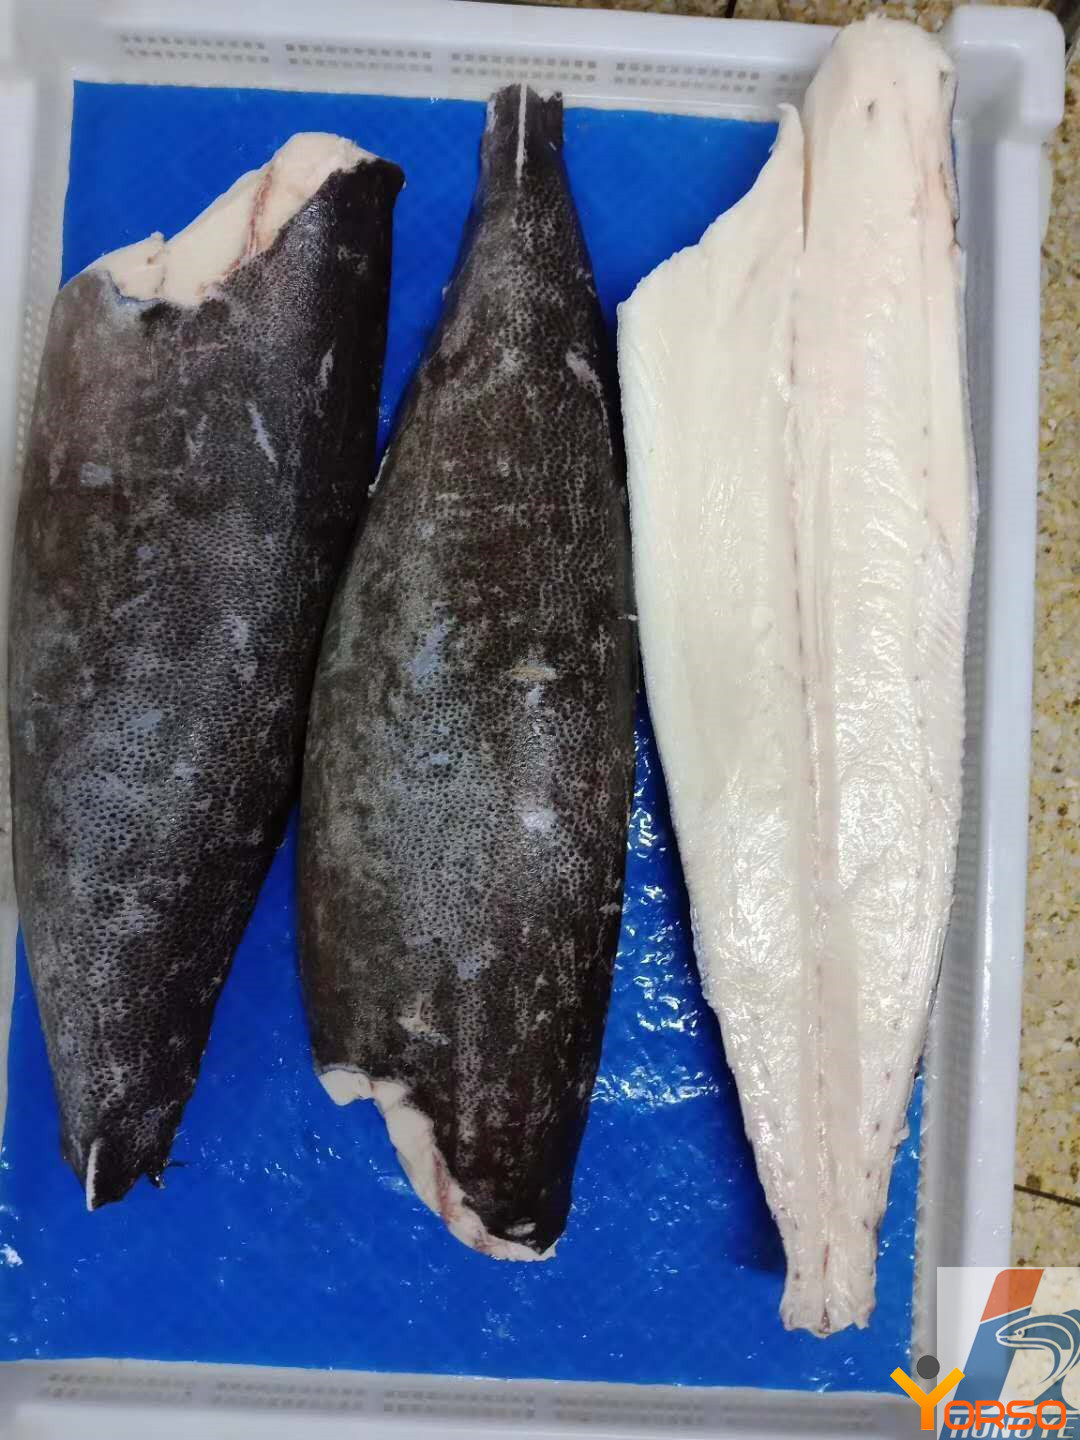 Oil fish (Escolar) fillet, 2-4, 4-6, 6+